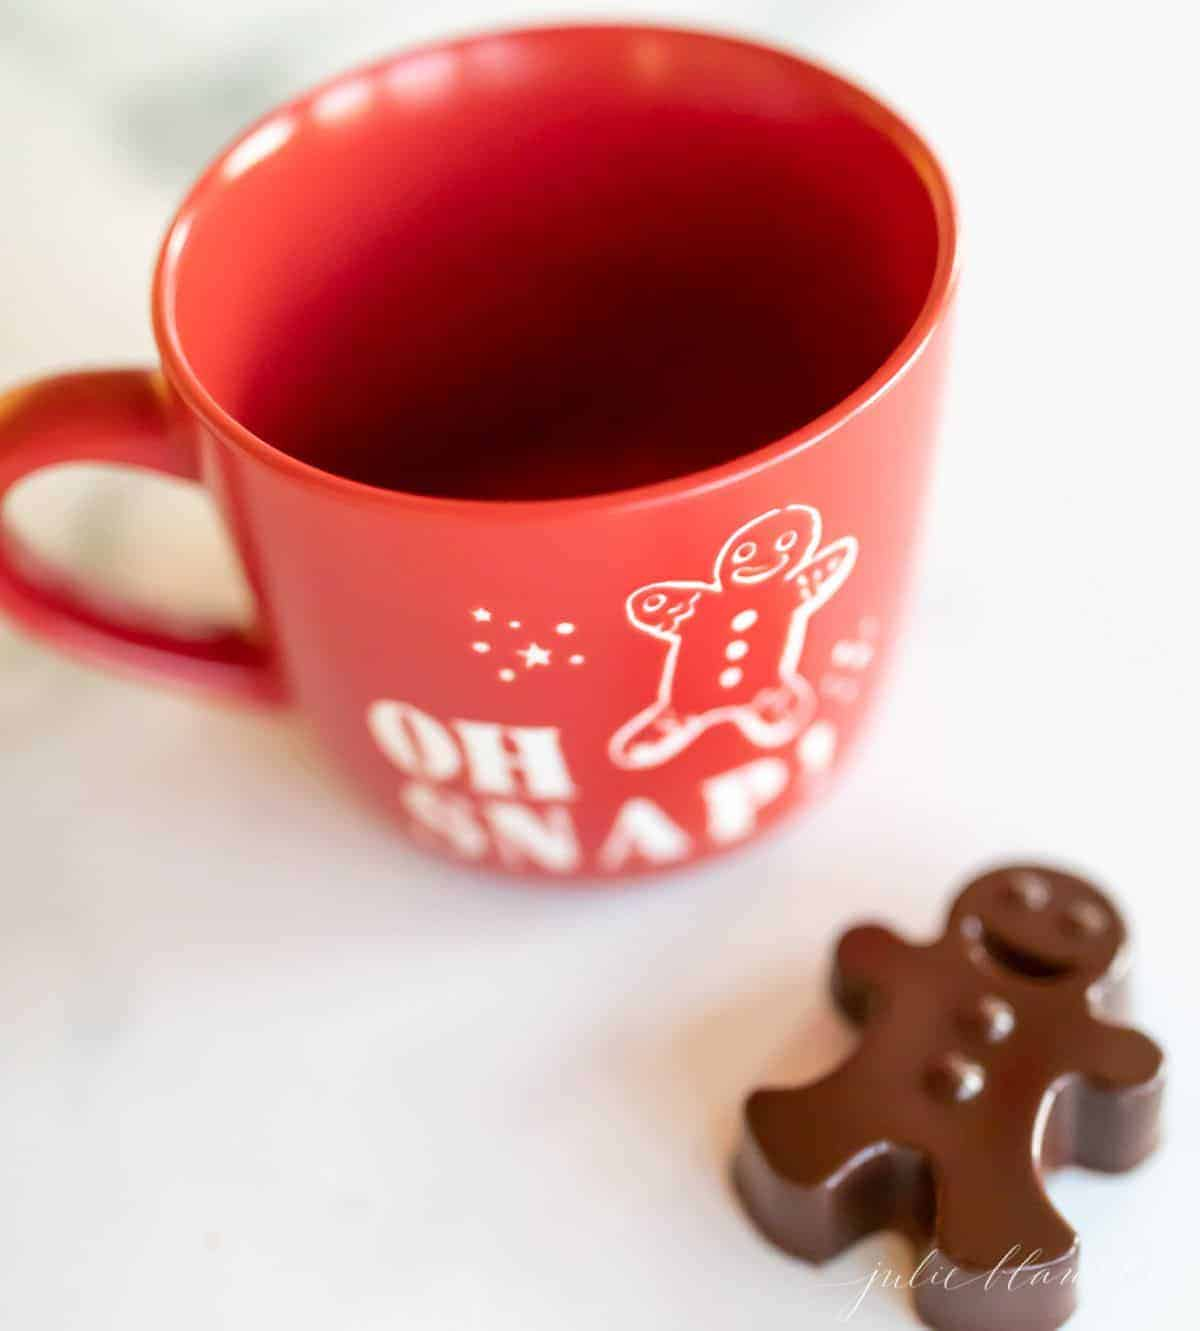 A red mug for hot chocolate, with a dark hot chocolate bomb shaped as a gingerbread man to the side.